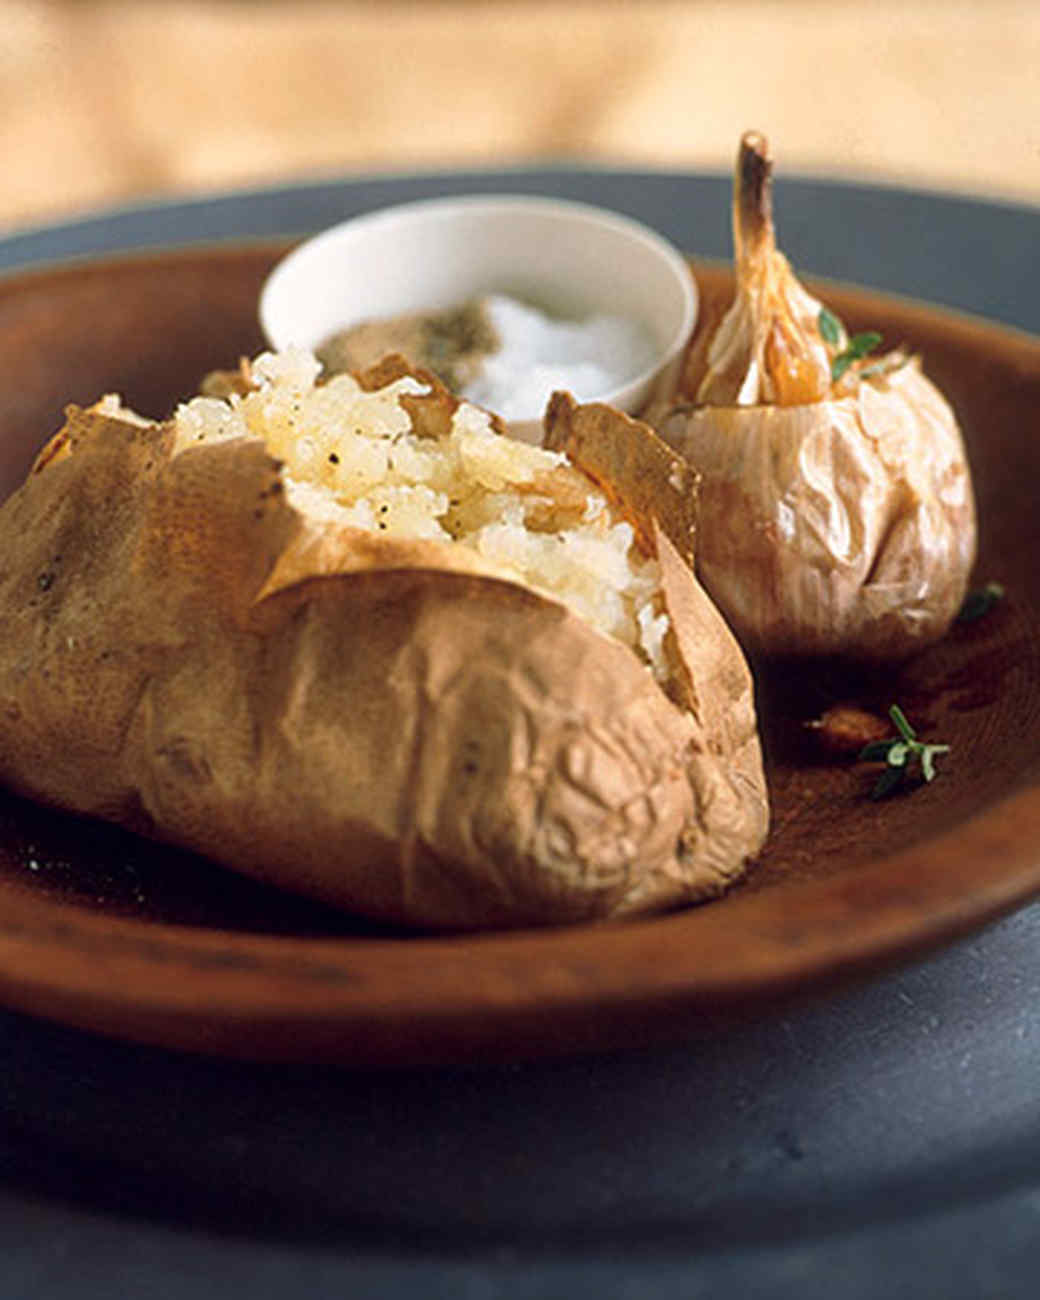 Baked Potatoes with Roasted Garlic